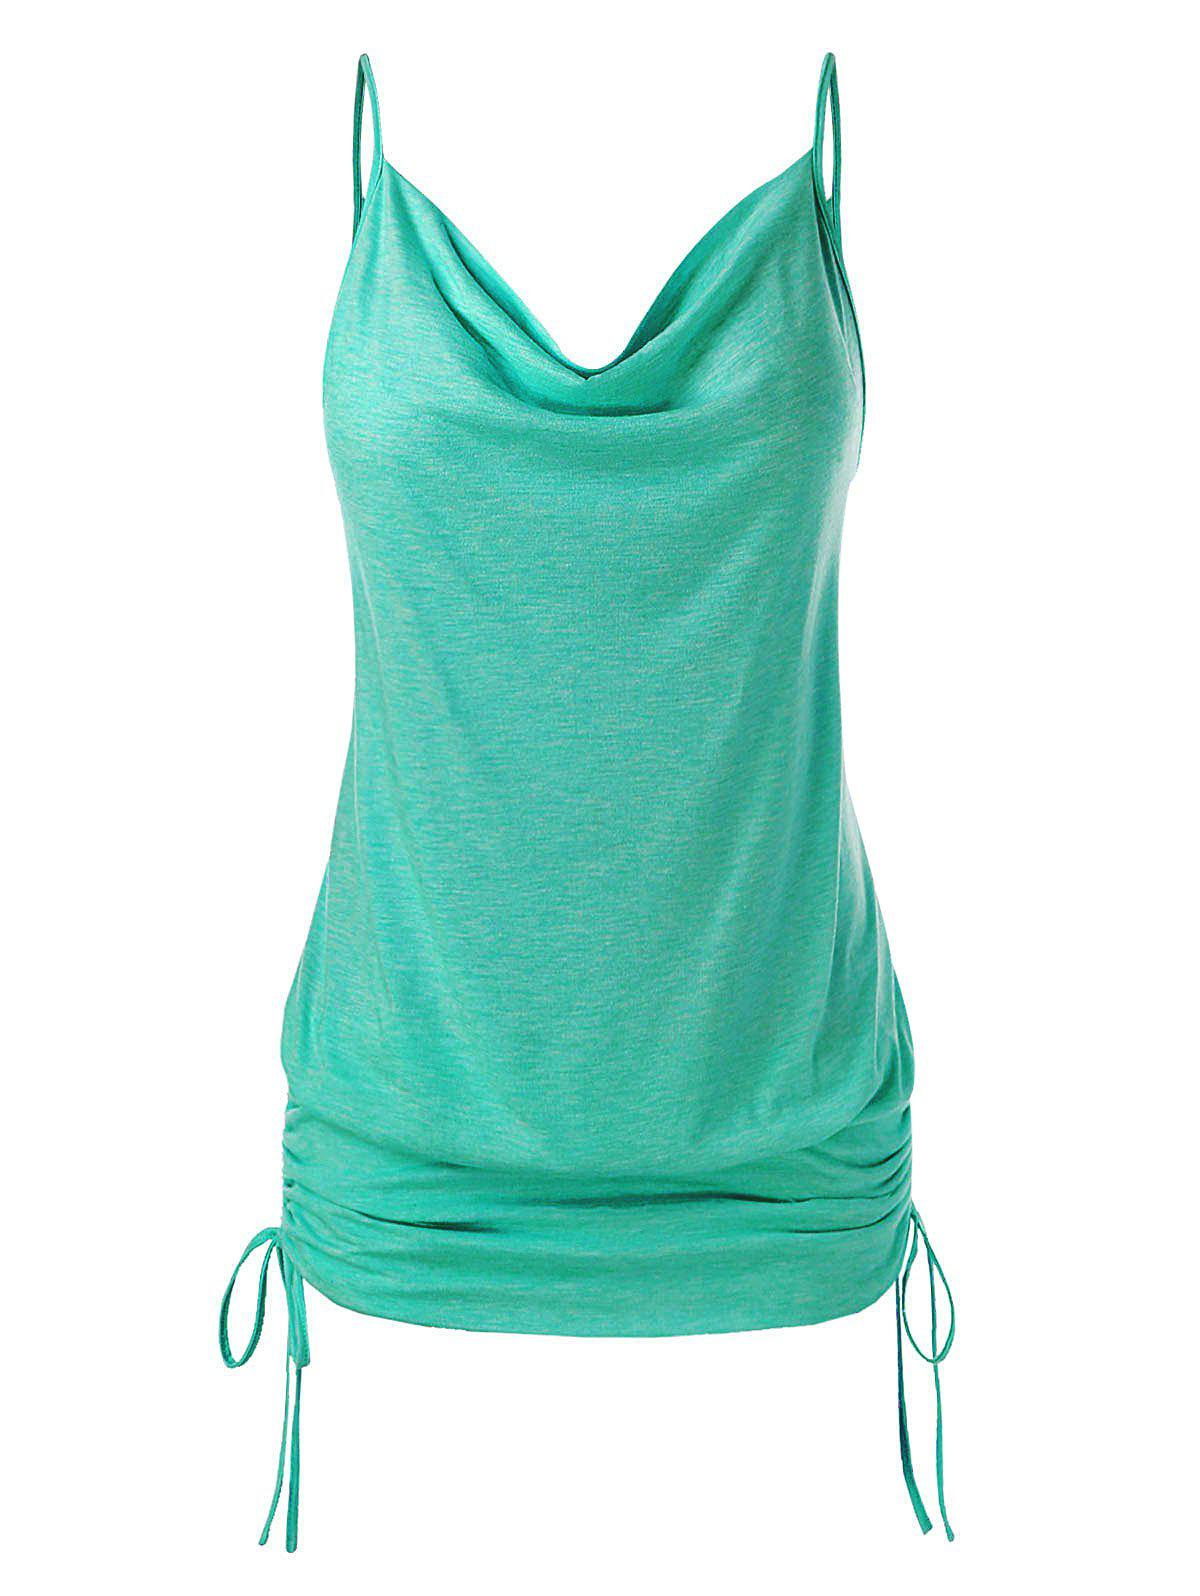 Plus Size Cowl Neck Cinched Cami Top - MACAW BLUE GREEN 3X